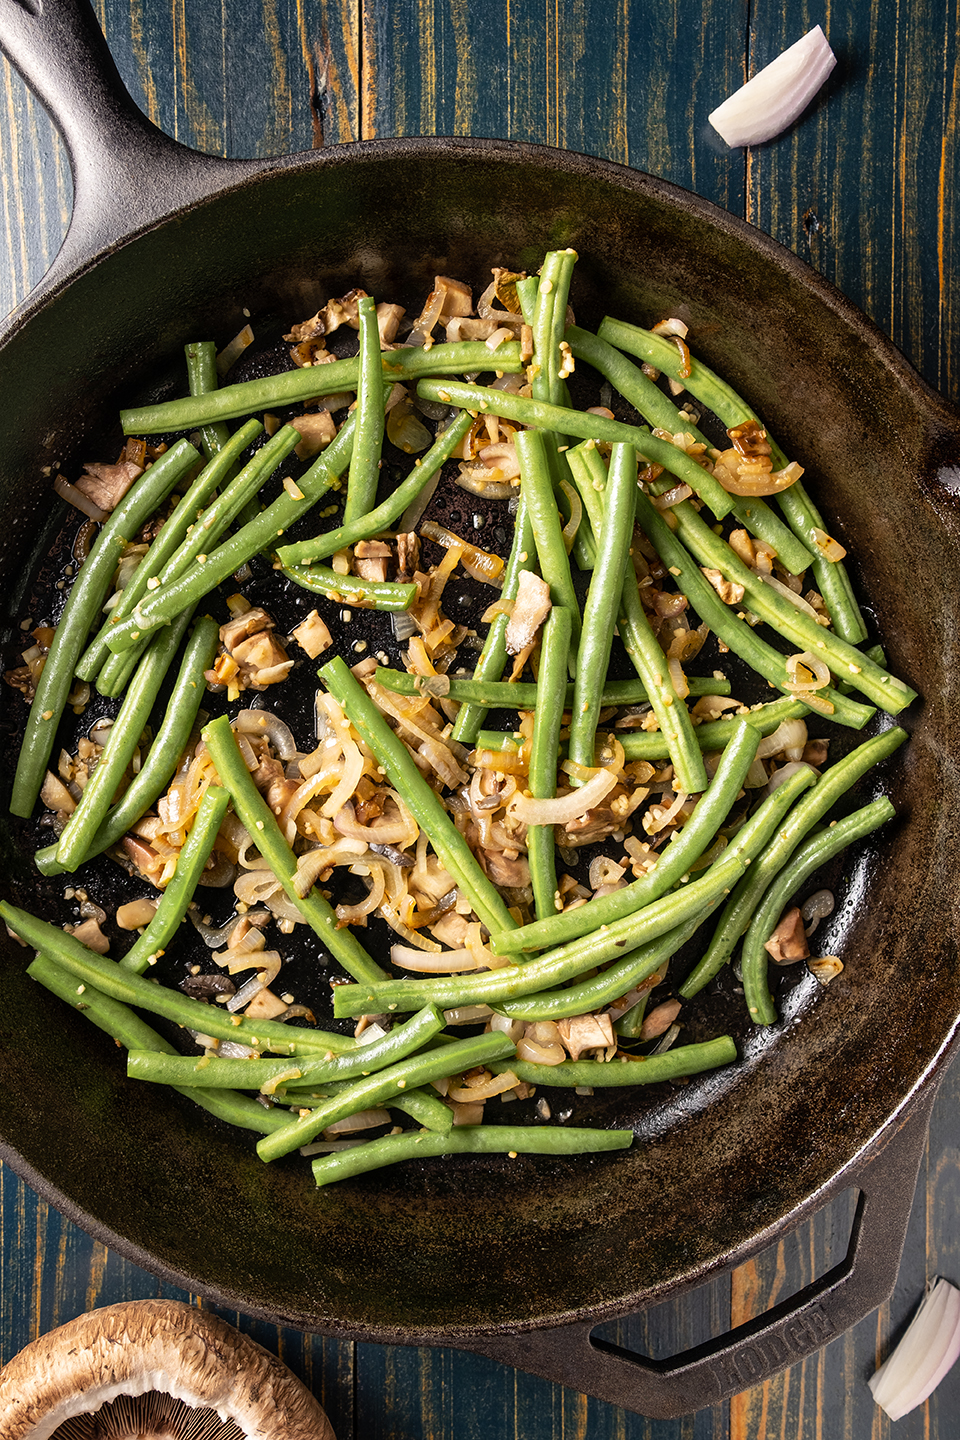 Cooked green beans, shallots and mushrooms in a cast iron pan on a blue wooded background.